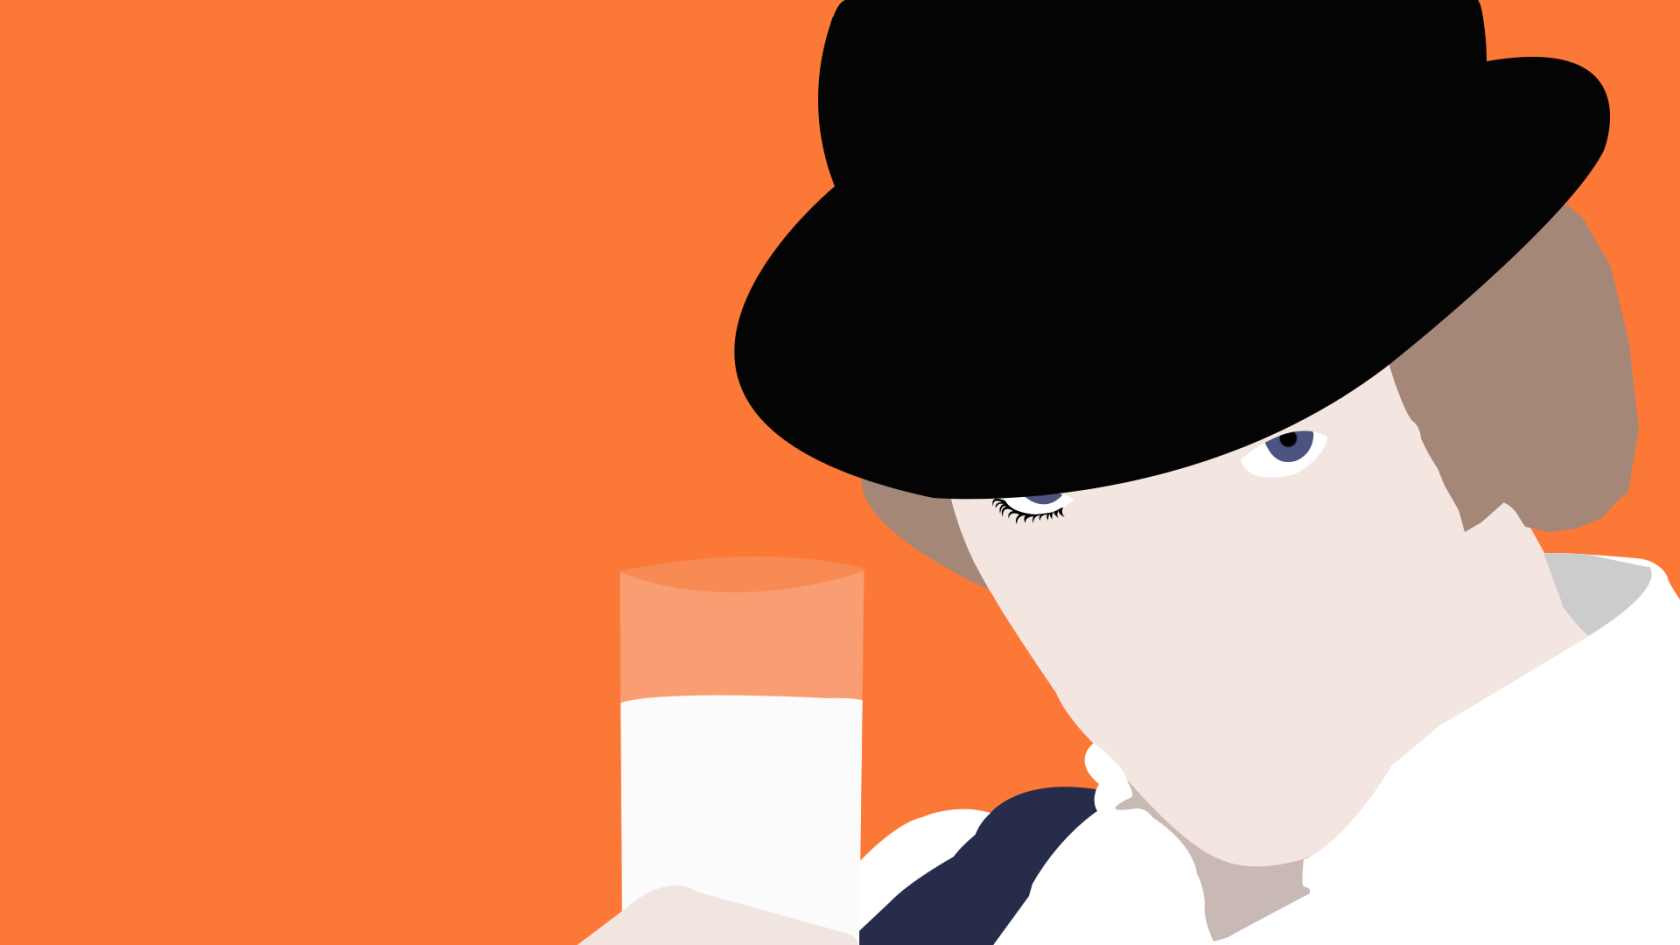 Alpha Coders Wallpaper Abyss Movie A Clockwork Orange 478897 A Clockwork Orange Wallpaper 1920x1080